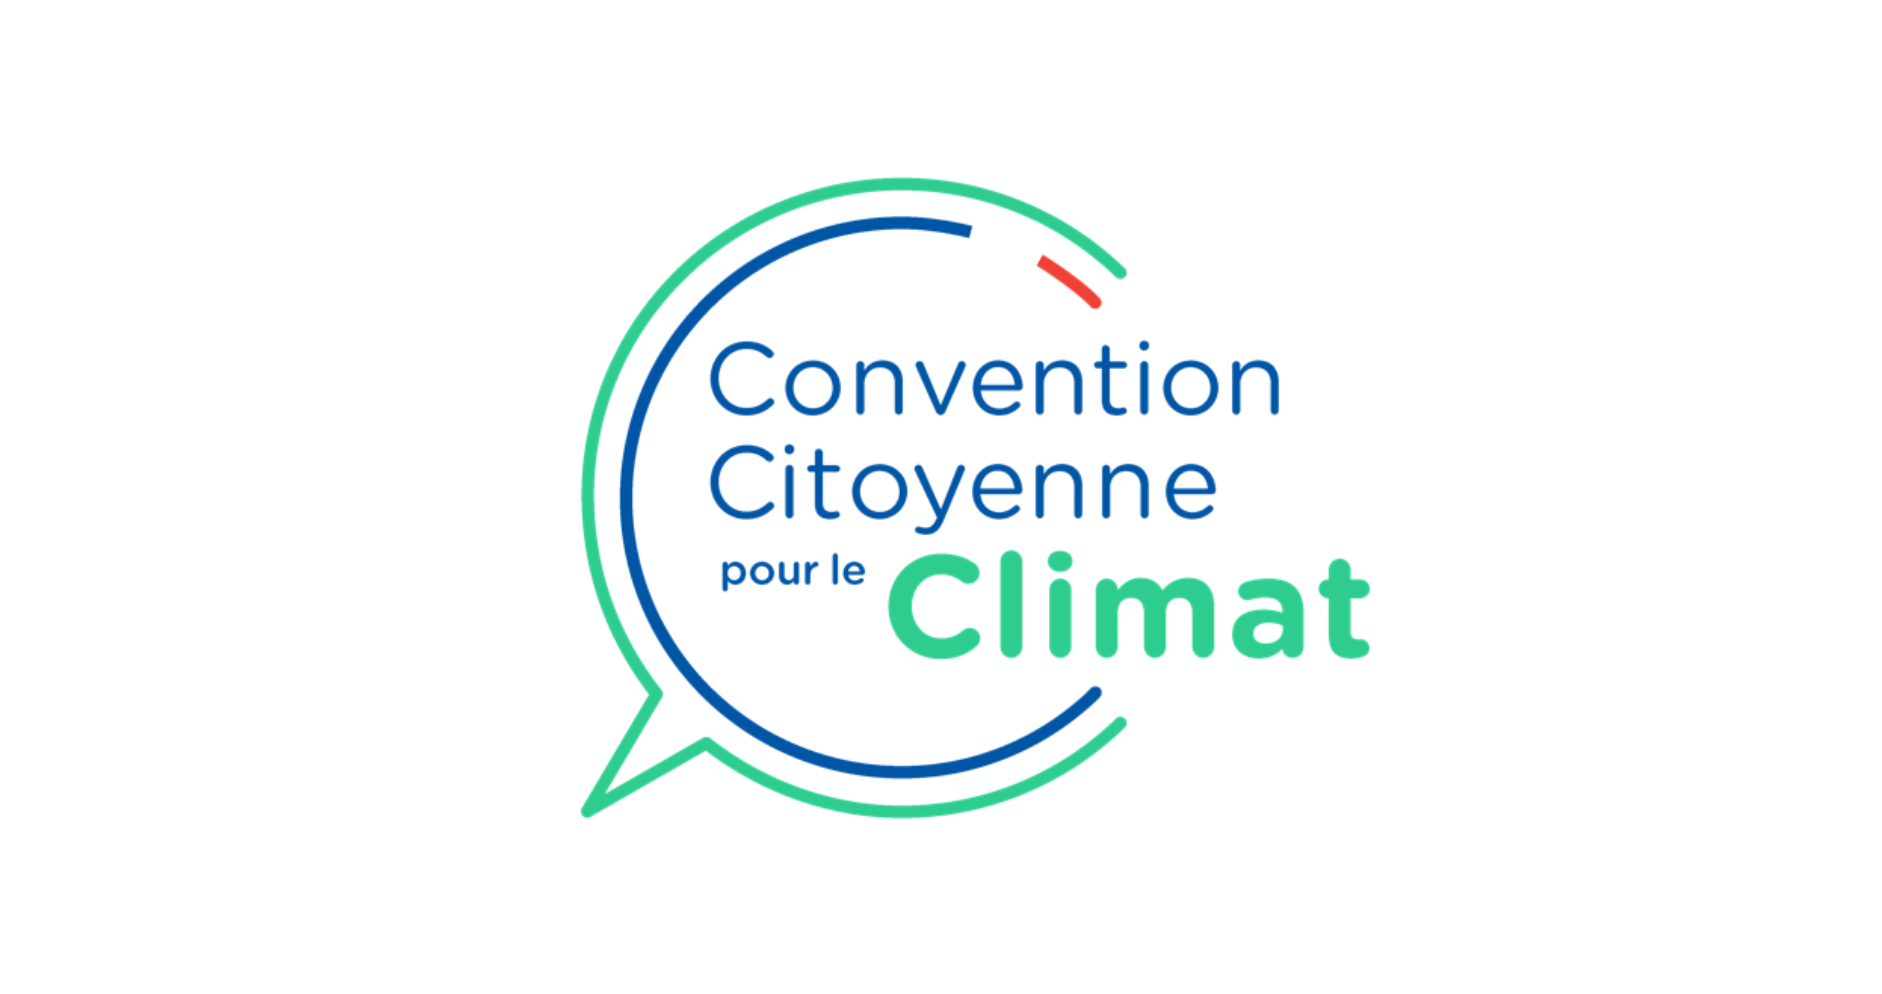 Afbeeldingsresultaat voor convention citoyenne pour le climat